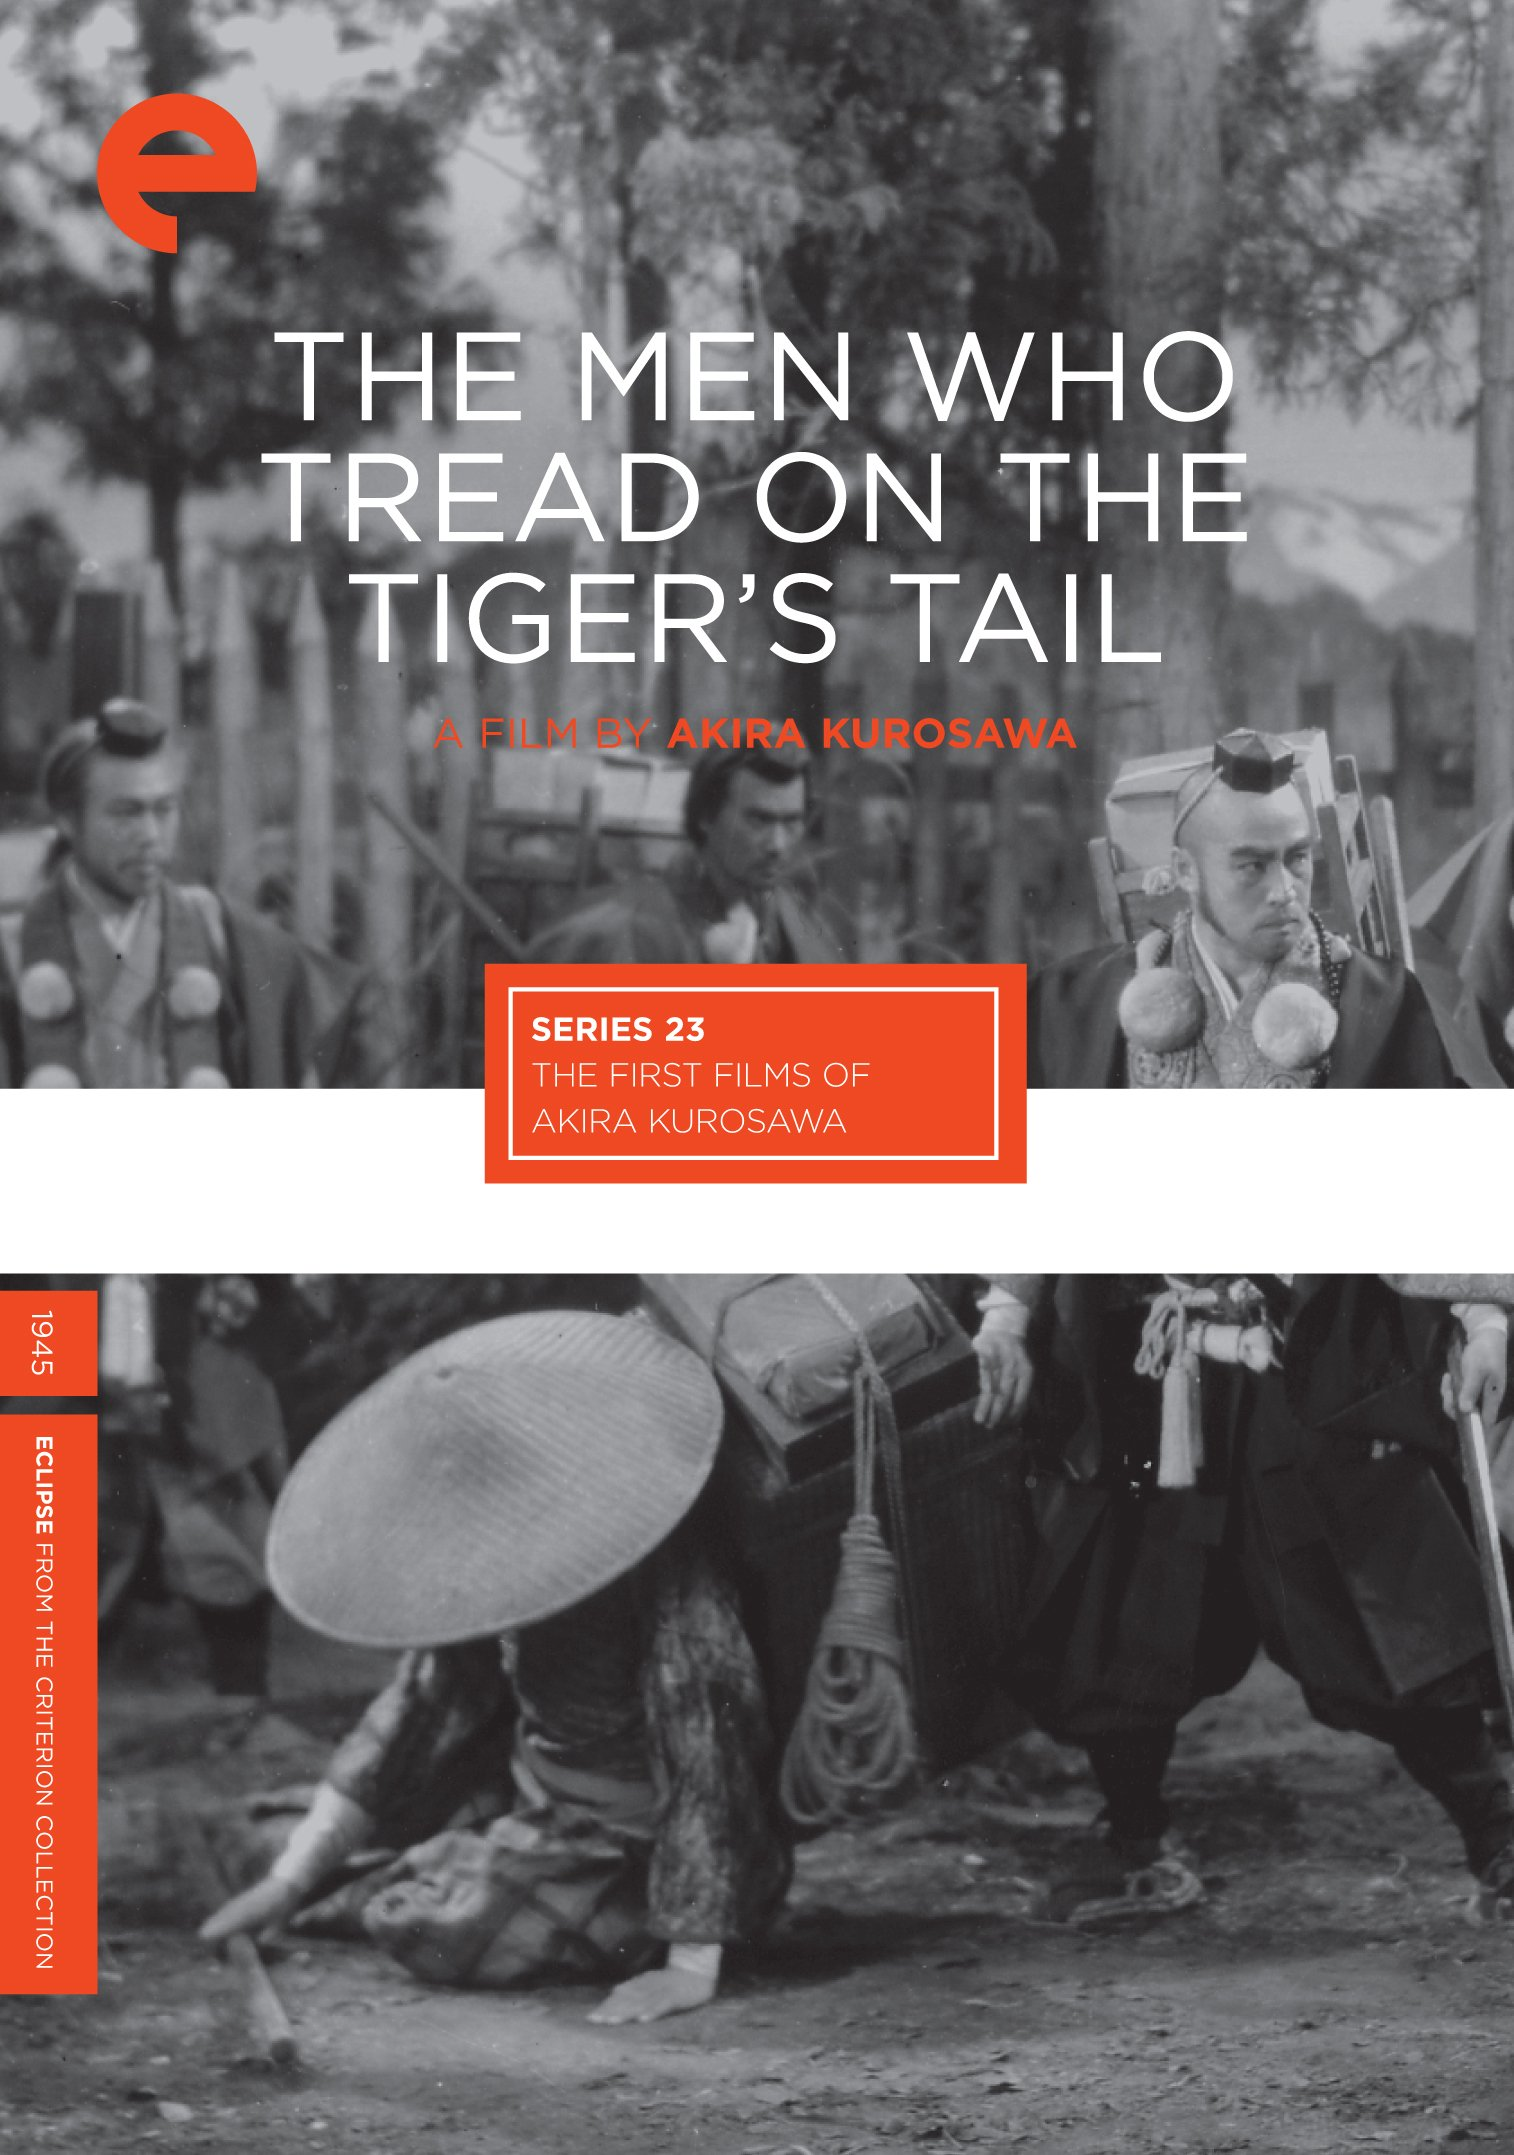 Eclipse Series 23: The First Films of Akira Kurosawa (Sanshiro Sugata / The Most Beautiful / Sanshiro Sugata, Part Two / The Men Who Tread on the Tiger's Tail) (The Criterion Collection) by Criterion